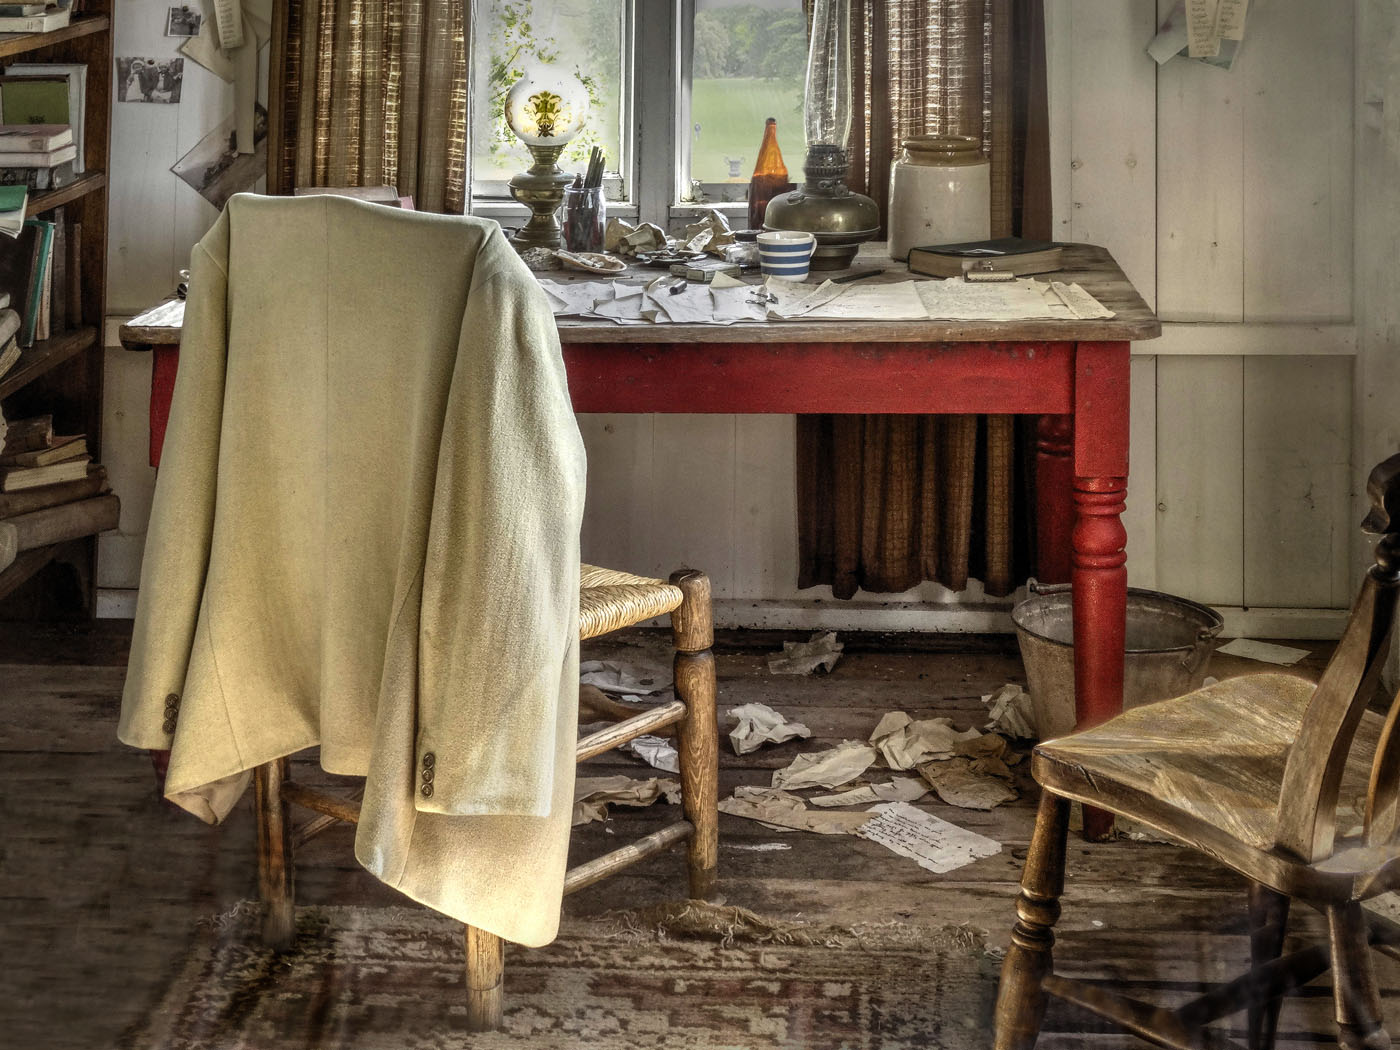 'Dylan Thomas's Workplace' by Peter Read